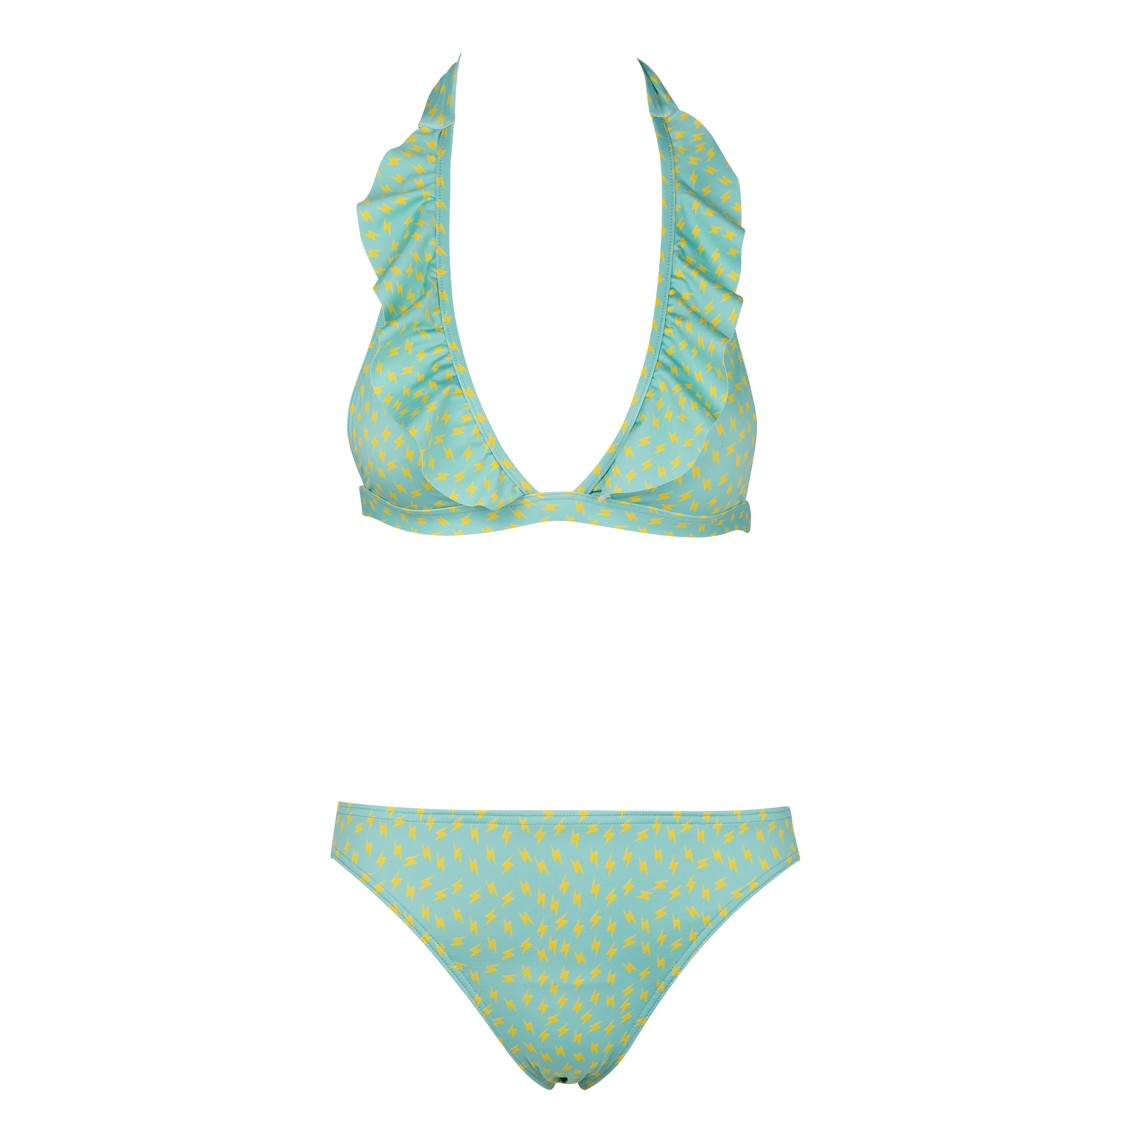 Ltd Ed Woman BIkini green Thunder Swimsuit